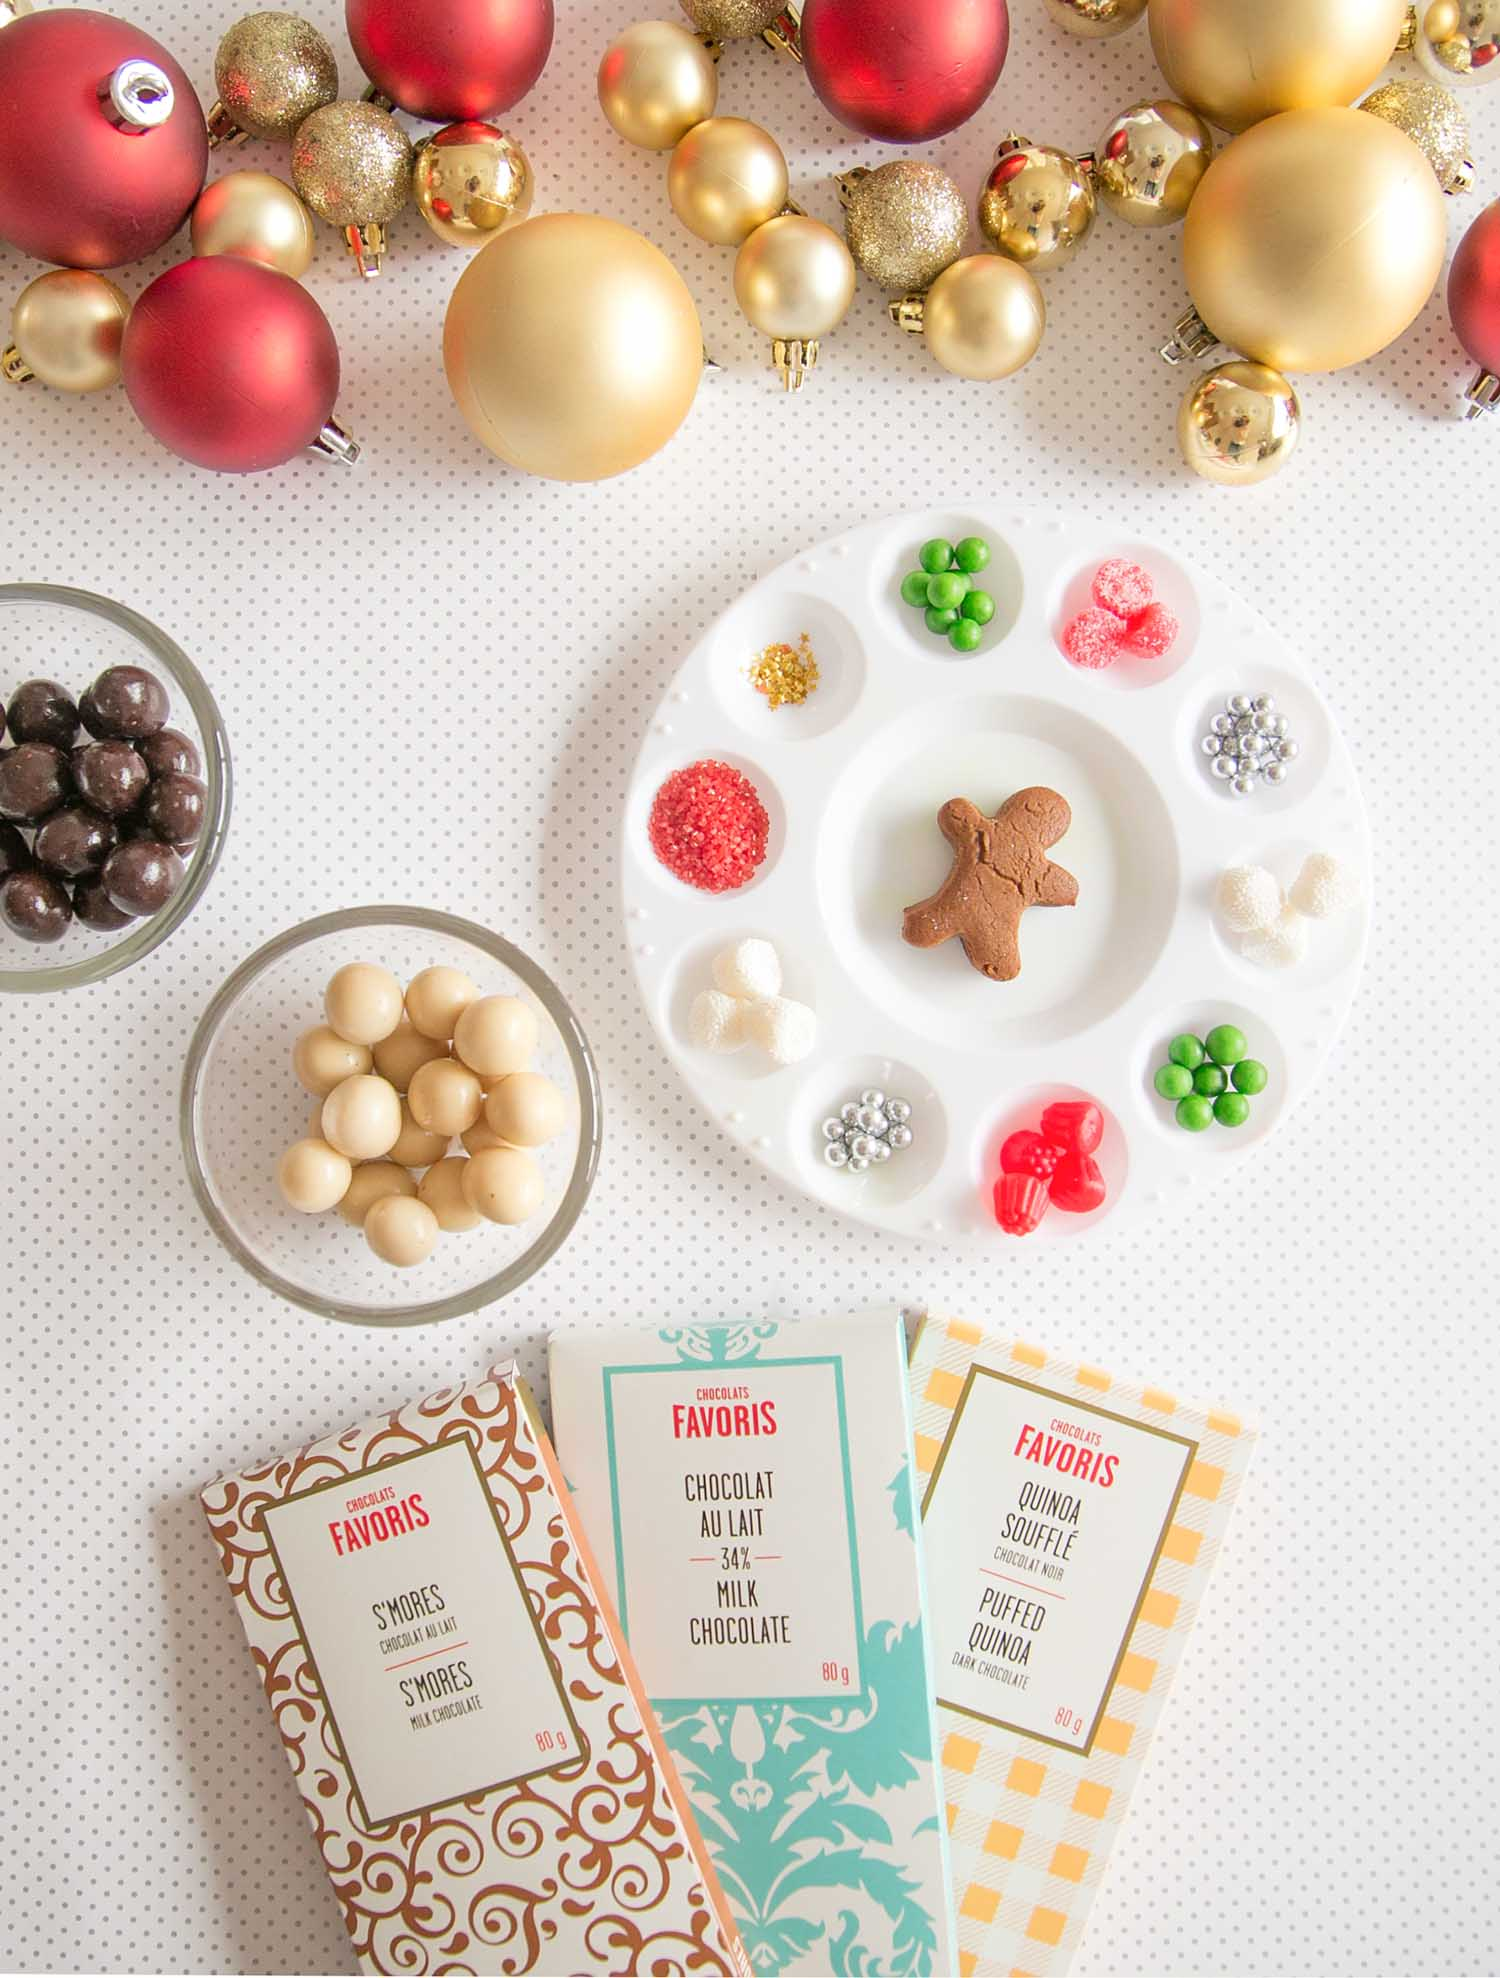 gingerbread house decorating with chocolate bars